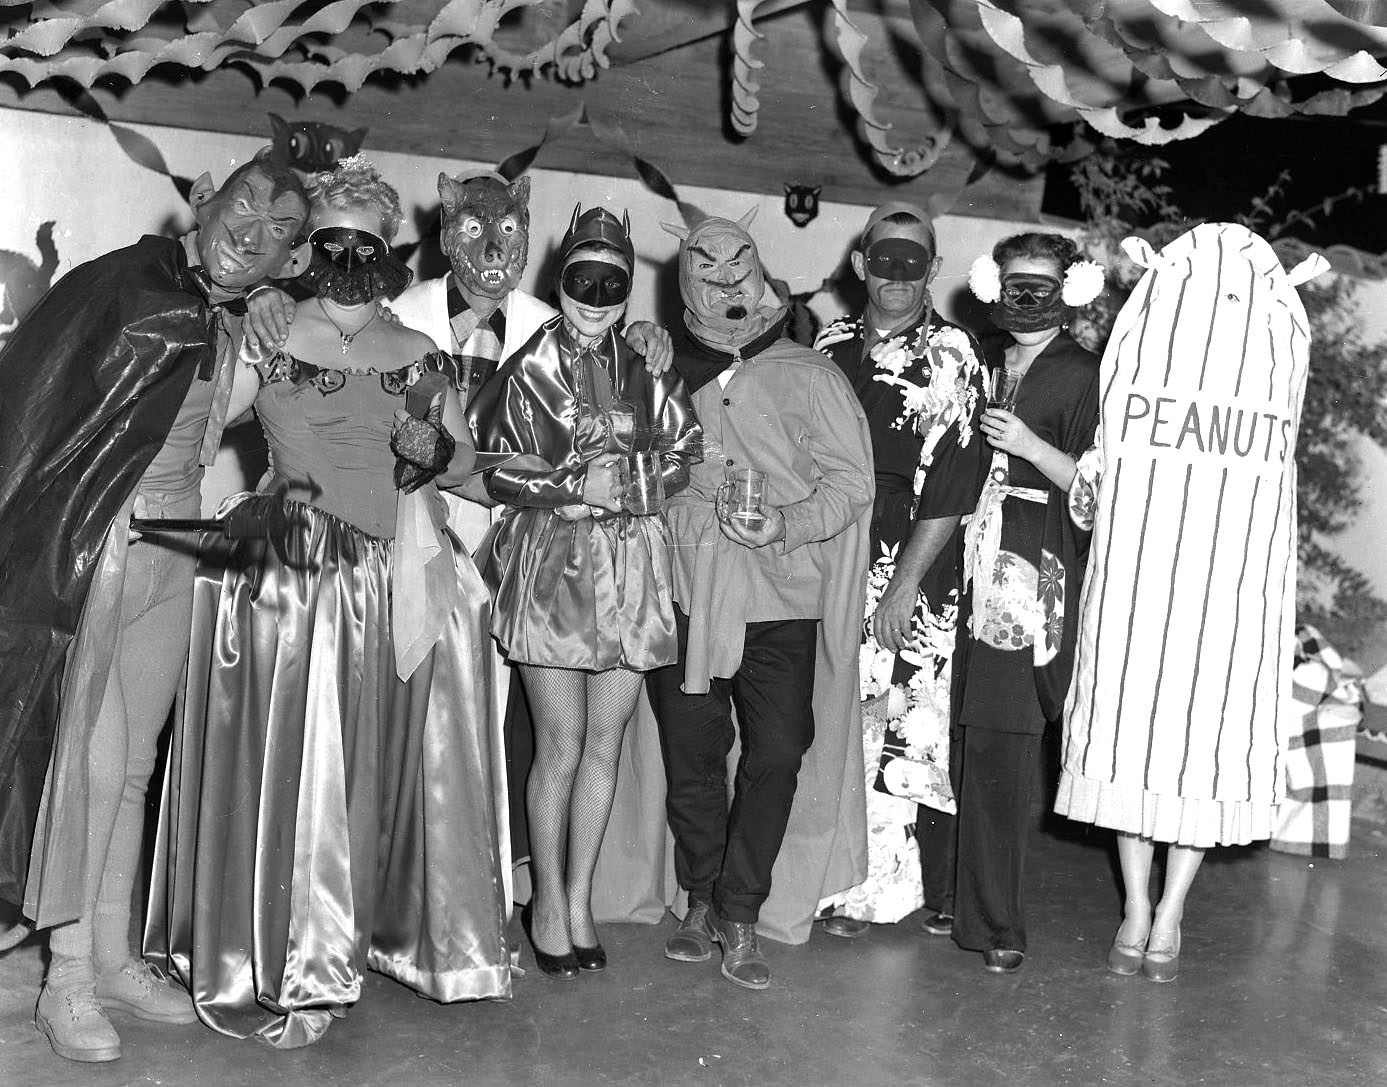 1950 Halloween Costume Ideas.Halloween Party Yesteryear 20 Found Photos From The 1950s 1980s